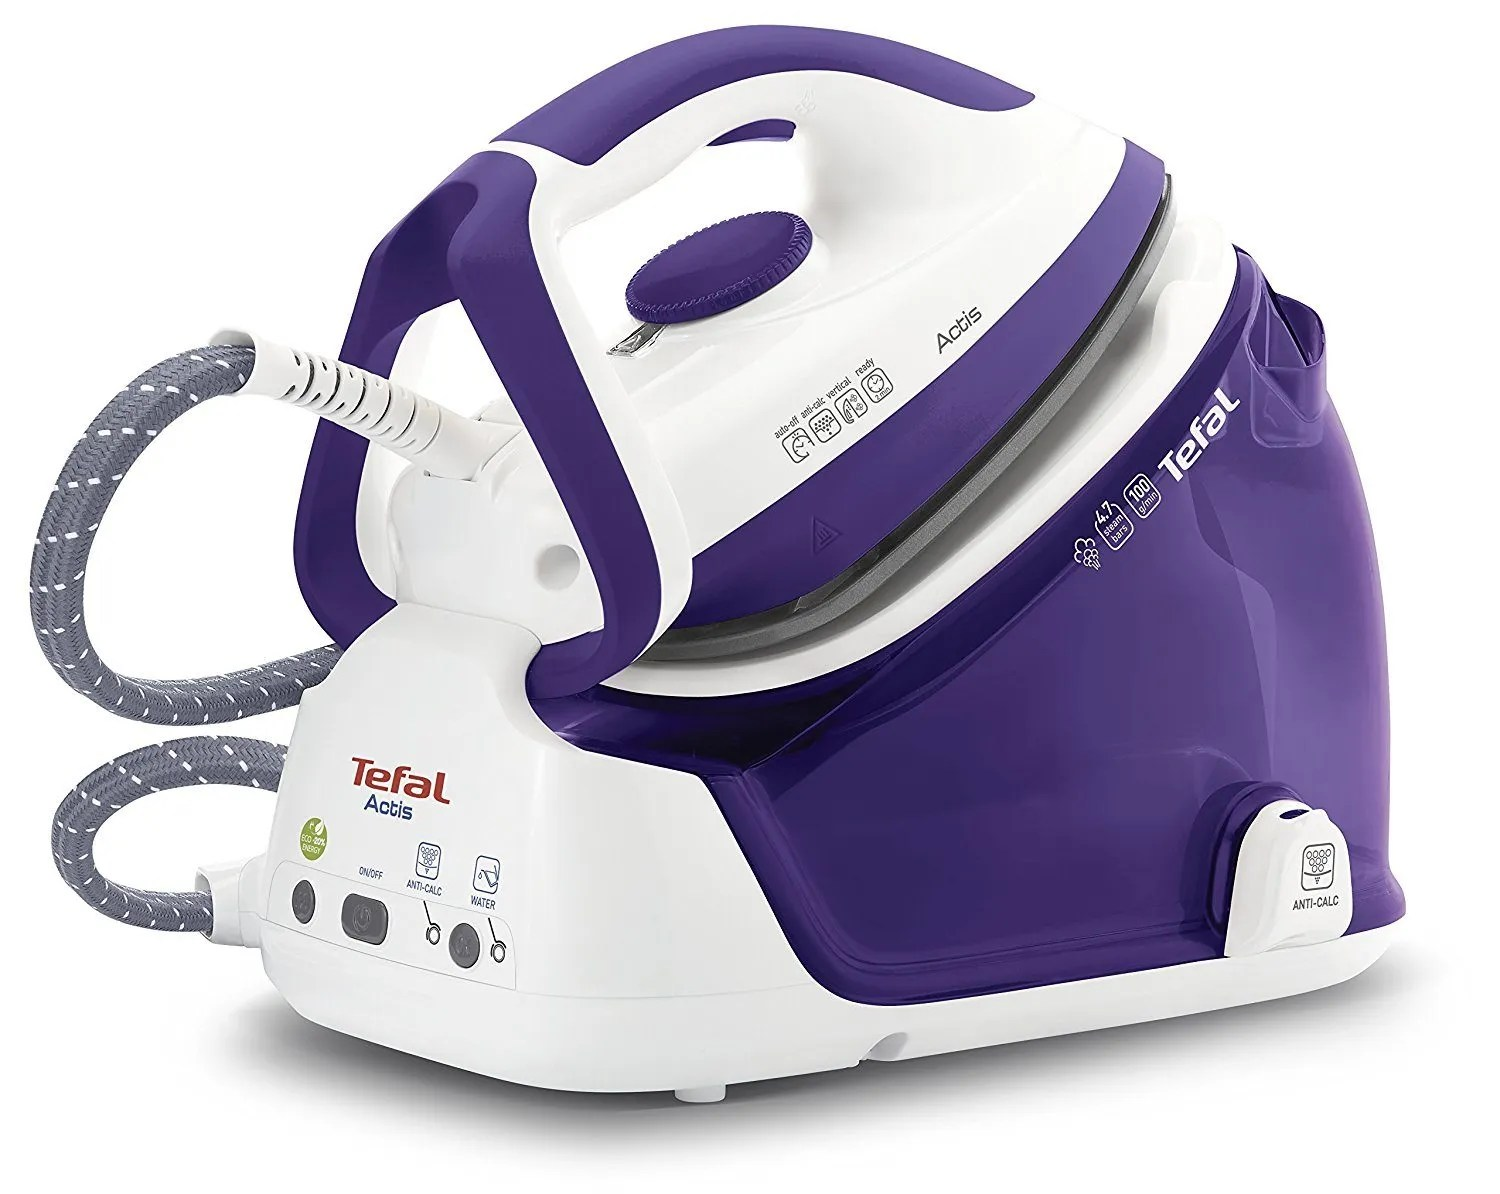 Tefal Stoomstrijkijzer Tefal Gv8461 Pro Express Autoclean Steam Generator Review